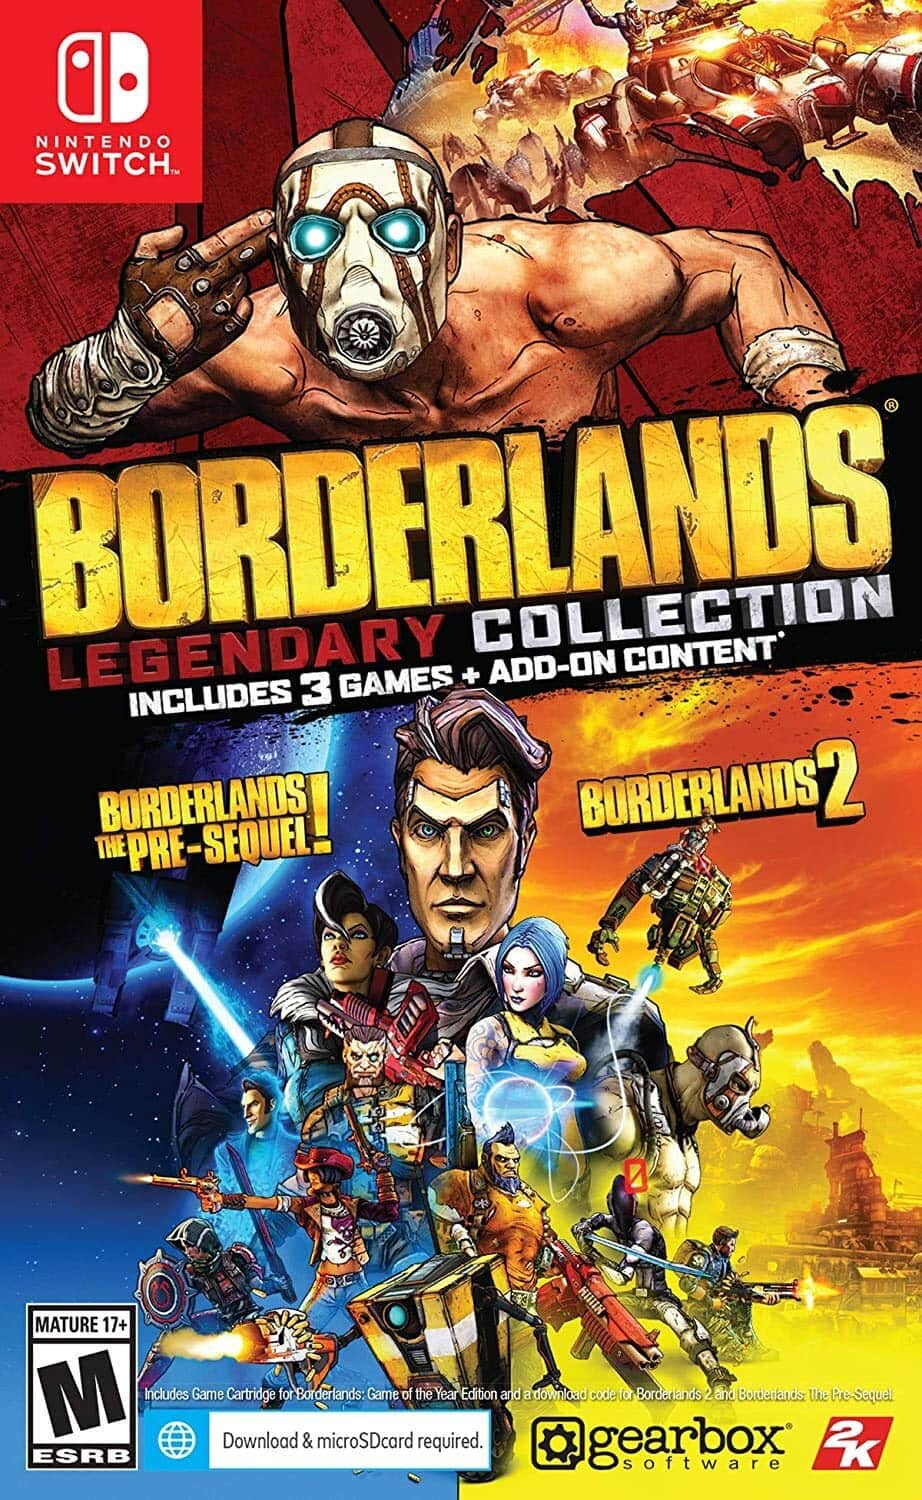 Borderlands Legendary Collection (Switch) - $24.99